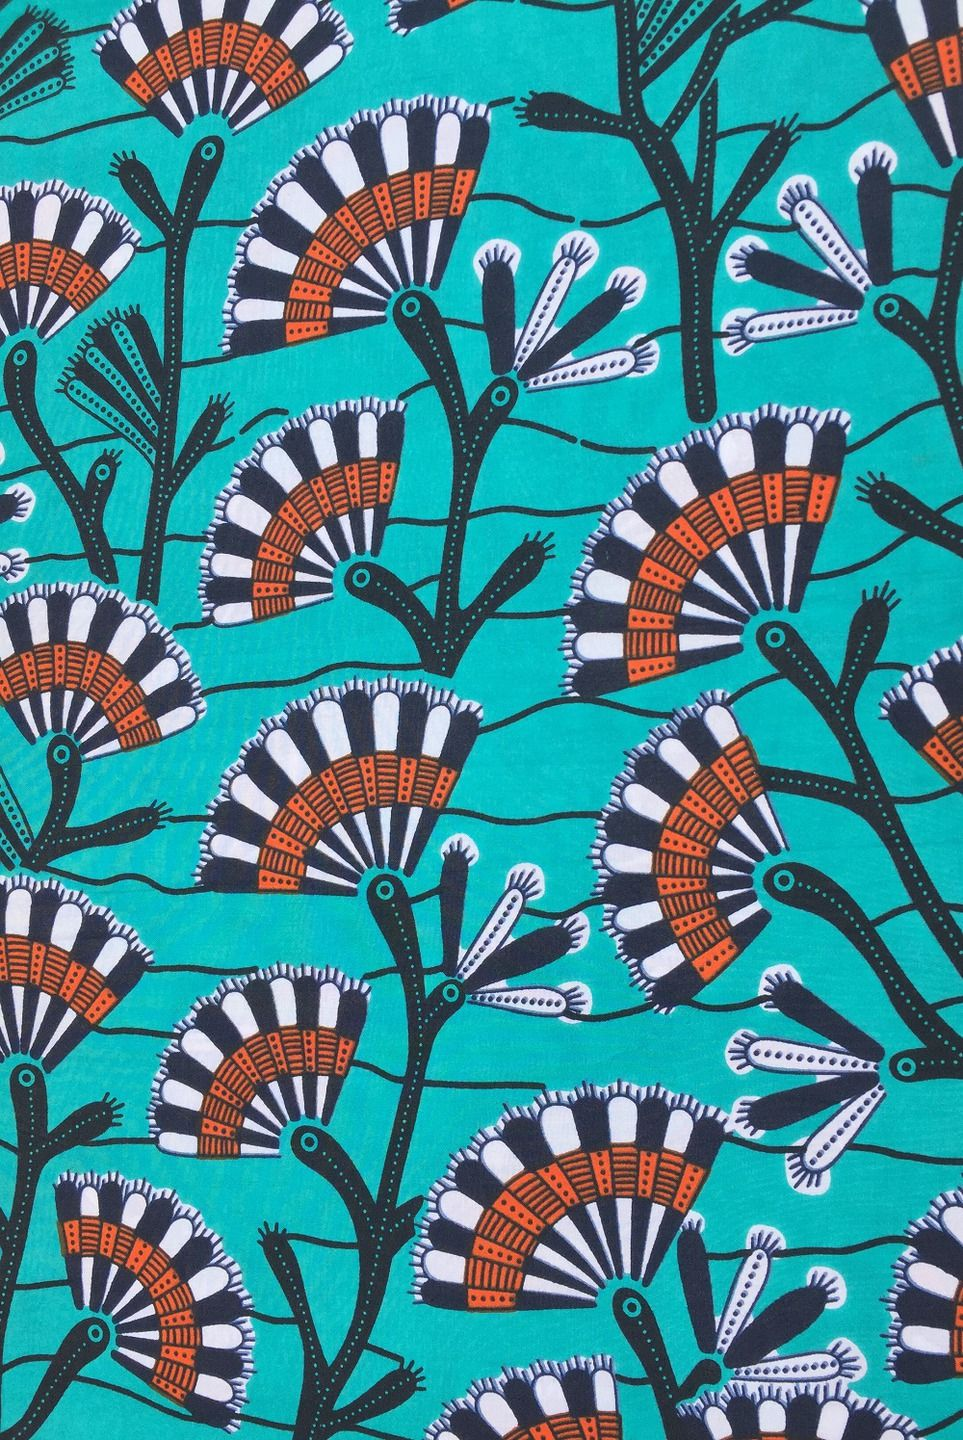 Pagne Wax 109 Printed By Wax Collection Tissu Africain Tissus Habillement Deco Par Odile La Benin Tissu Africain Motifs Africains Art Africain Traditionnel